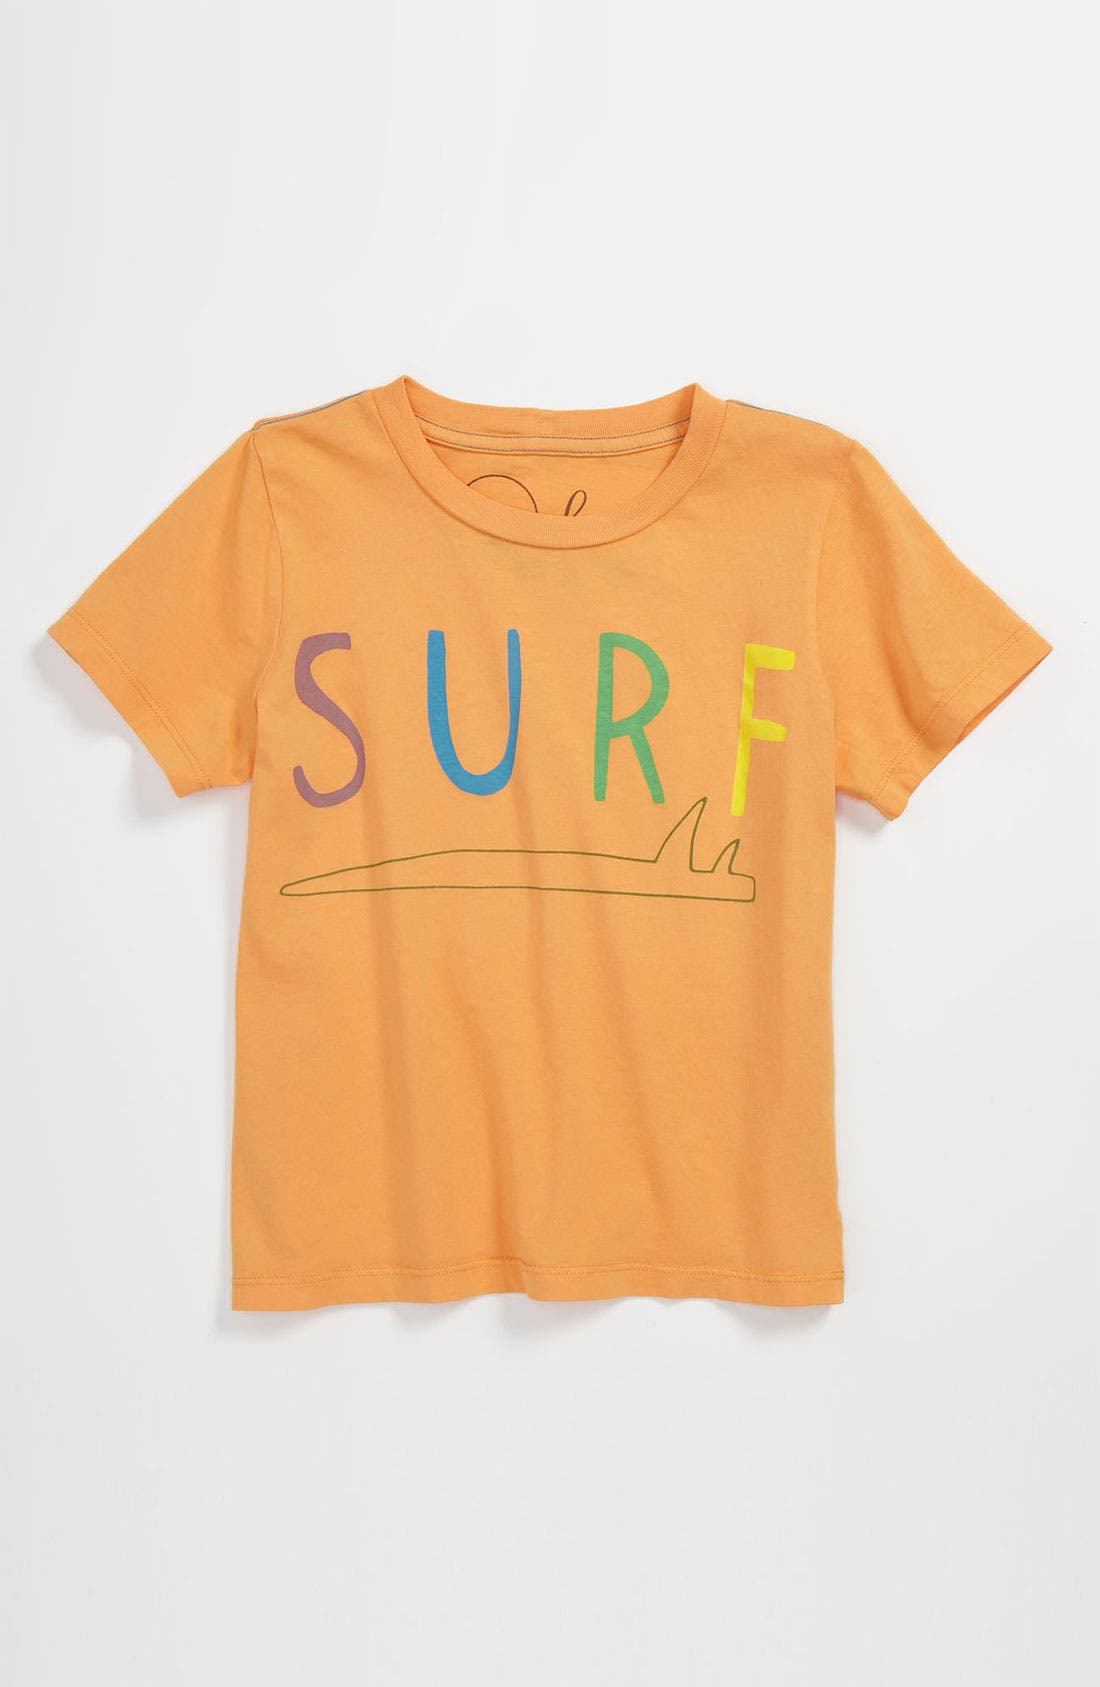 Alternate Image 1 Selected - Peek 'Surf' T-Shirt (Toddler, Little Boys & Big Boys)